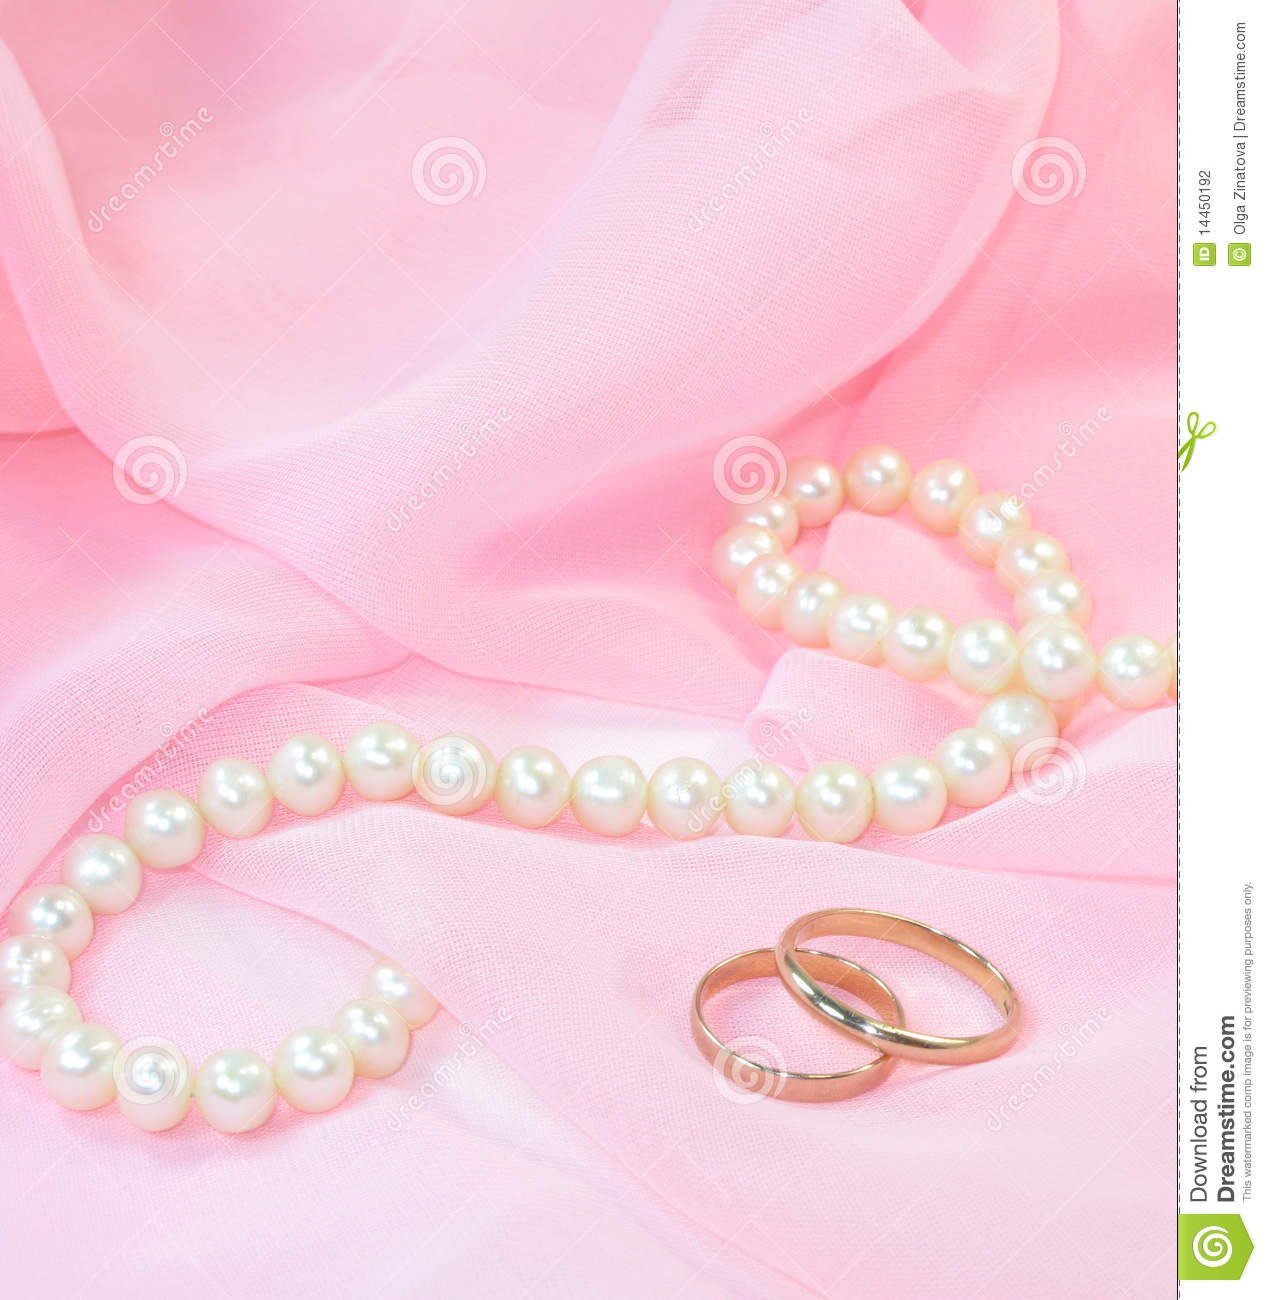 Pearls and wedding rings stock photo. Image of silk, shining - 14450192